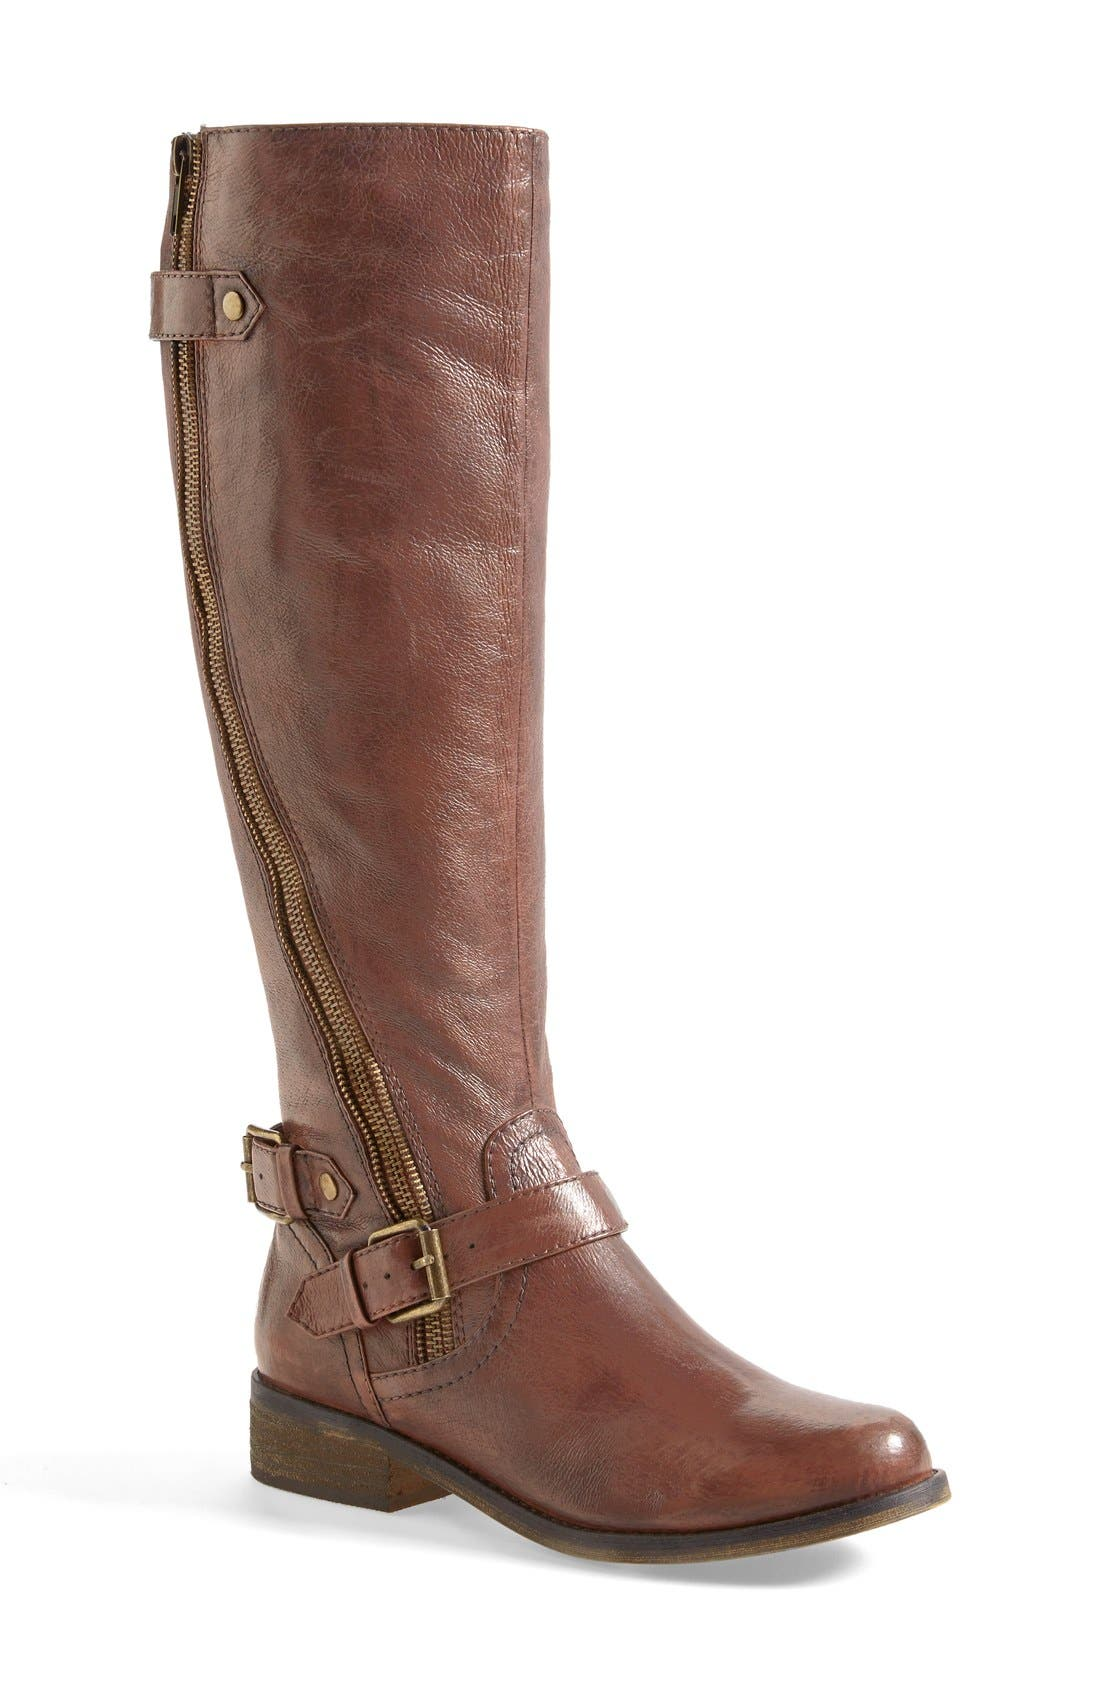 Main Image - Steve Madden 'Synicle' Boot (Women)